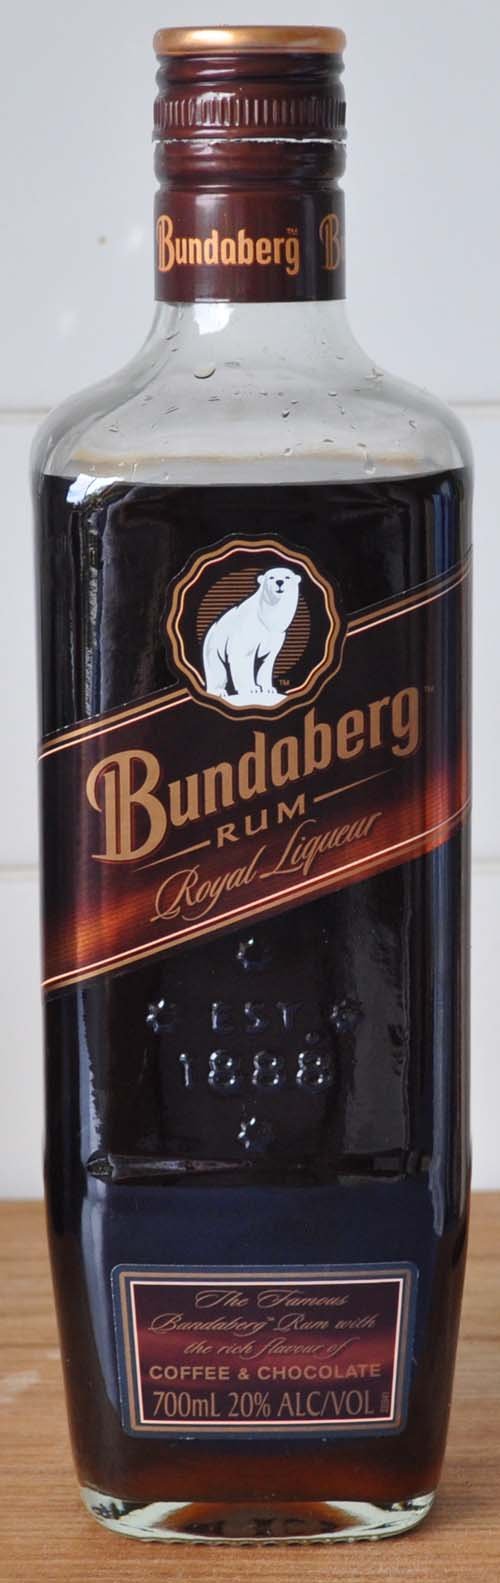 Bundaberg Rum Distillery Tour Price